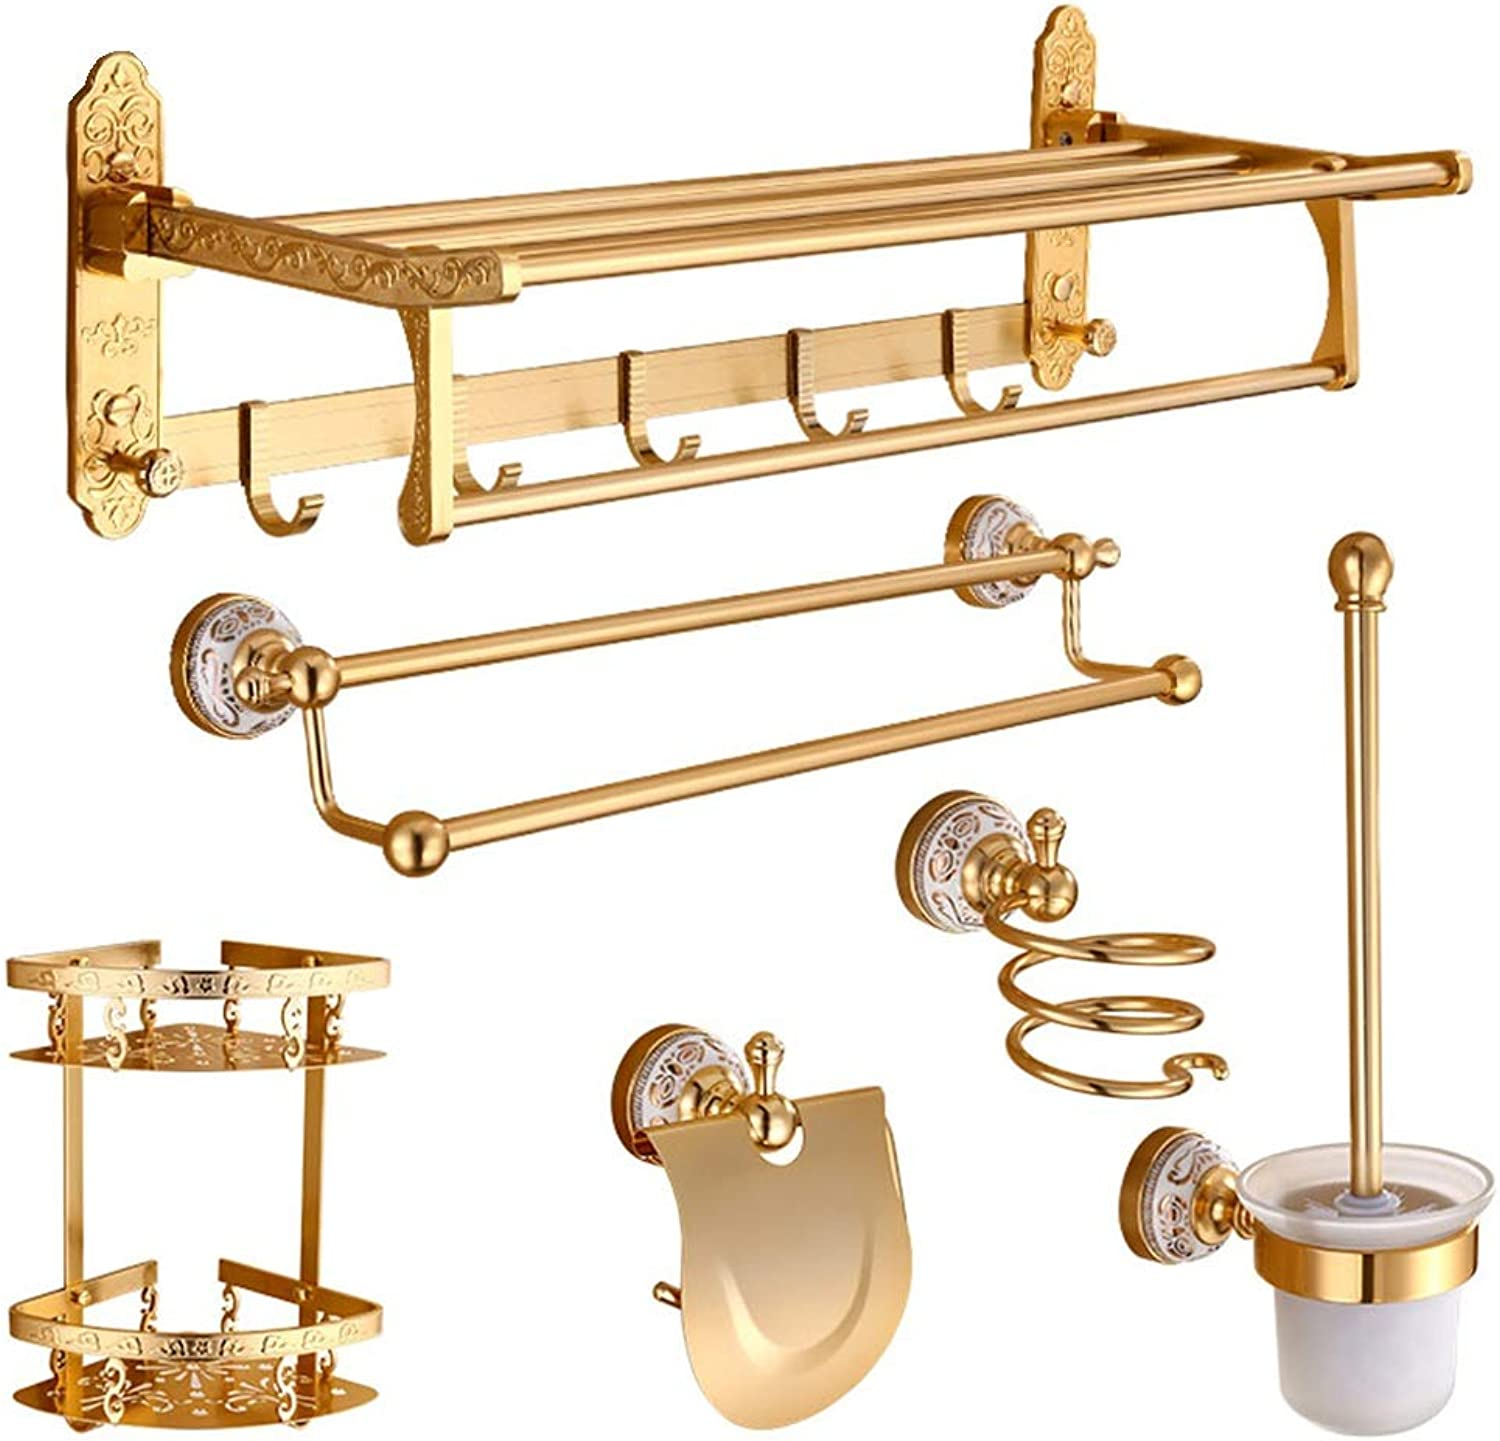 ZHANWEI Bathroom Shelf Shower Organiser Towel Rack Wall-Mounted Hair Dryer Rack Triangle Basket Toilet Brush Tissue Box Space Aluminum Combination Toilet gold (color   F-Combination)